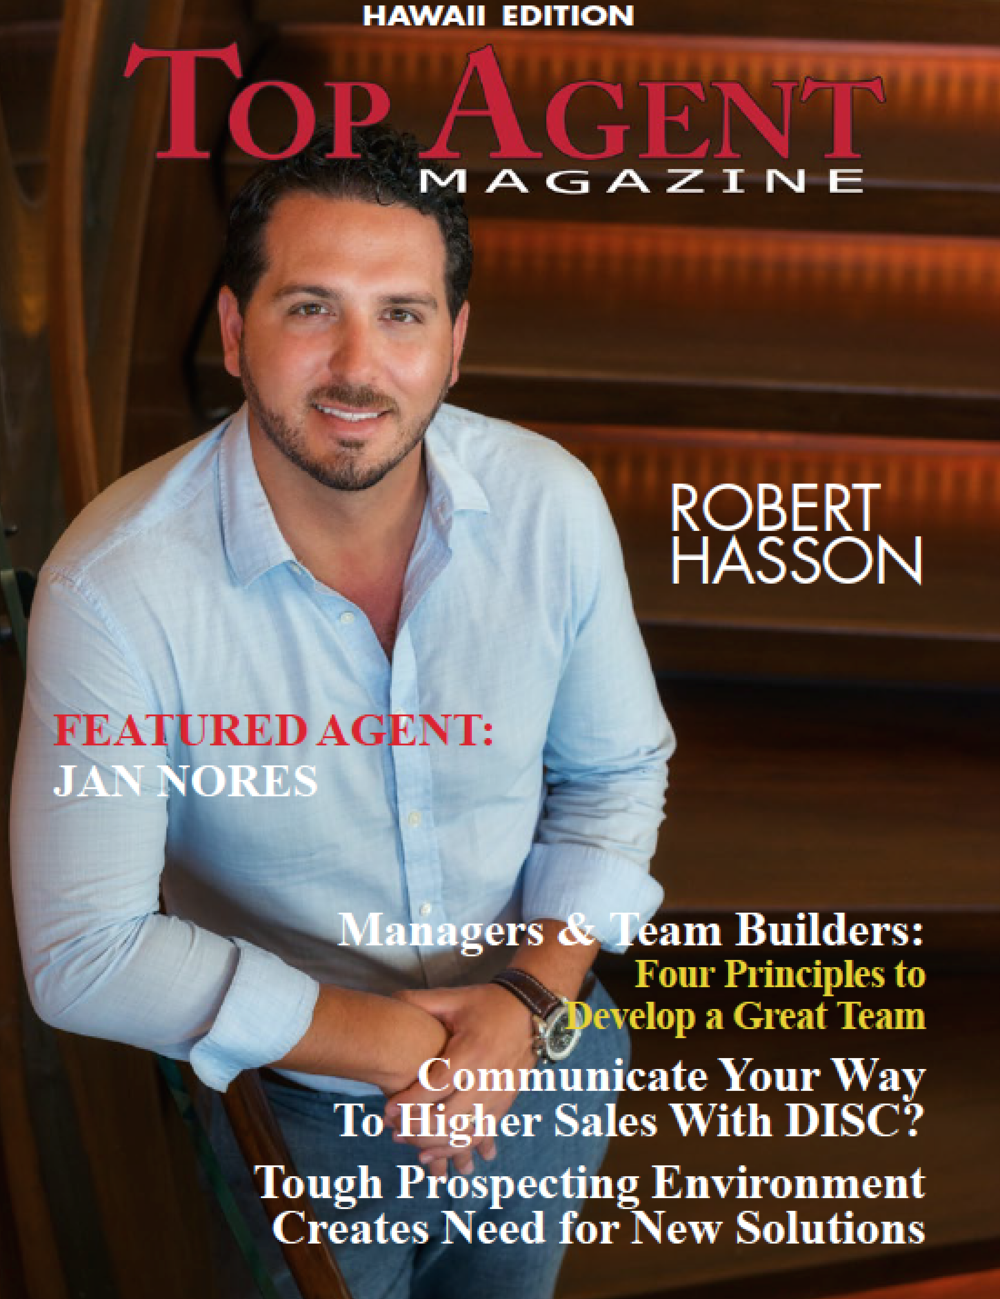 Top Agent Magazine Nationwide U0026 International Edition Features The Best  Real Estate Agents, Brokers And Industry Partners Throughout The World.